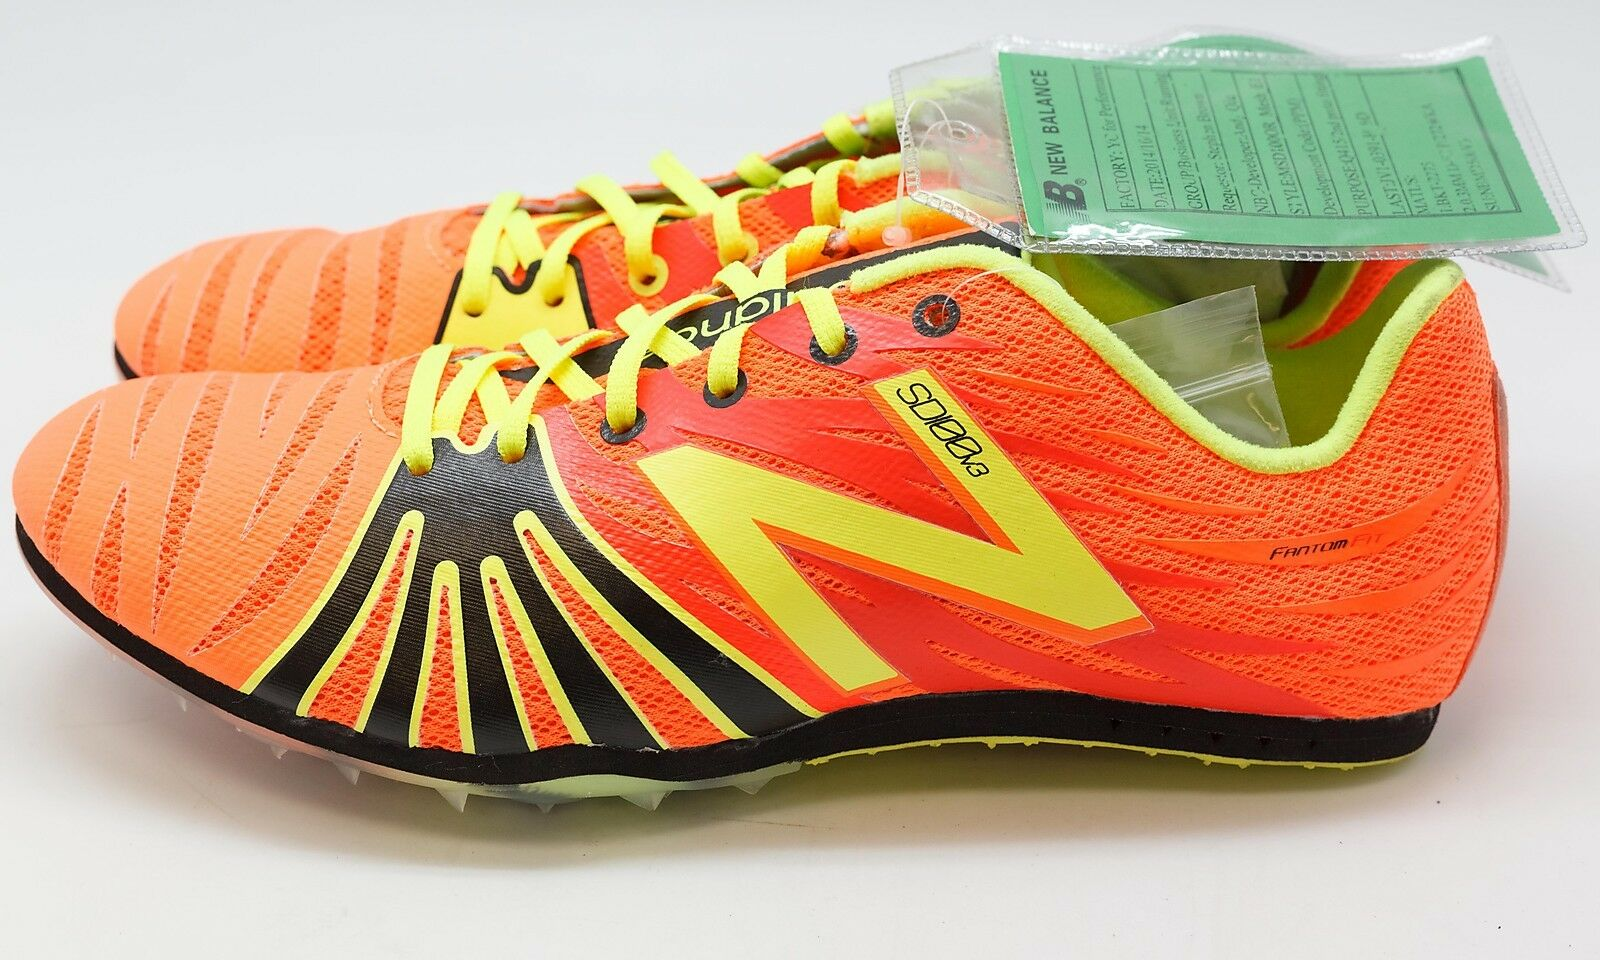 ProssoOTYPE NEW NEW NEW BALANCE SD100v3 Dimensione 9 TRACK &FIELD SPRINTING SILENT HUNTE TC5 95e3d1